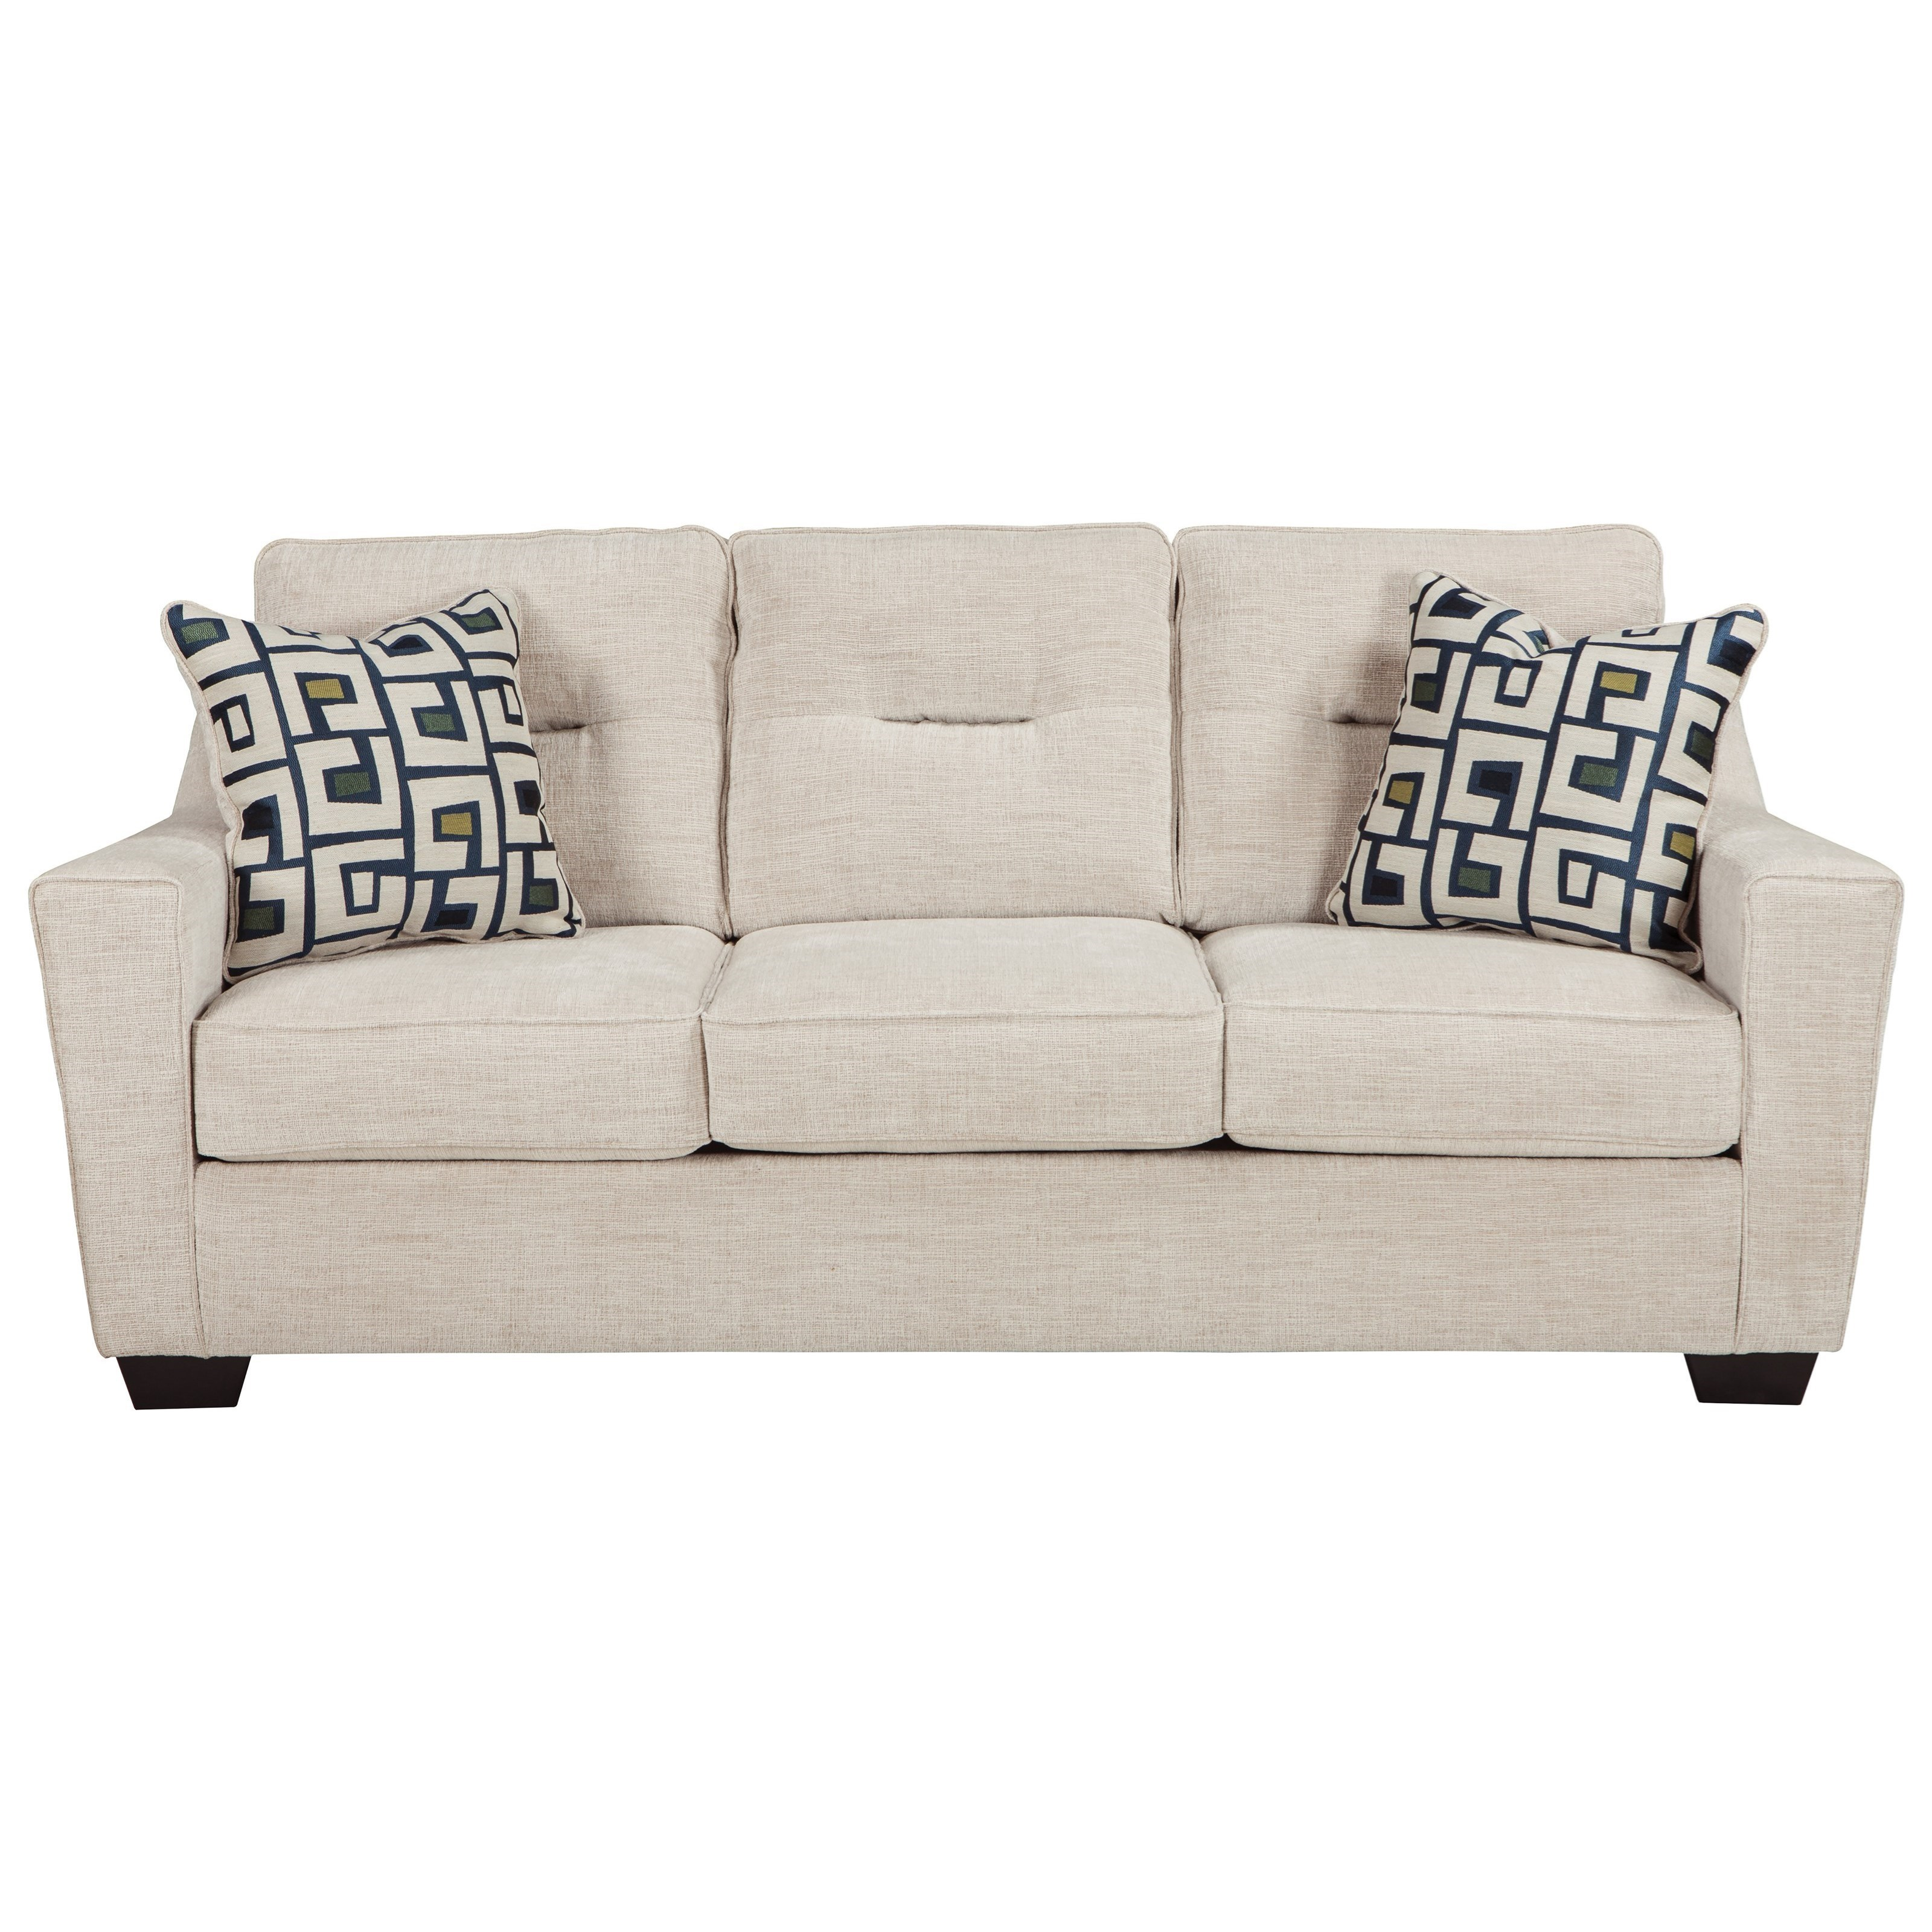 ashley furniture cerdic sofa with shaped track arms miskelly furniture sofas